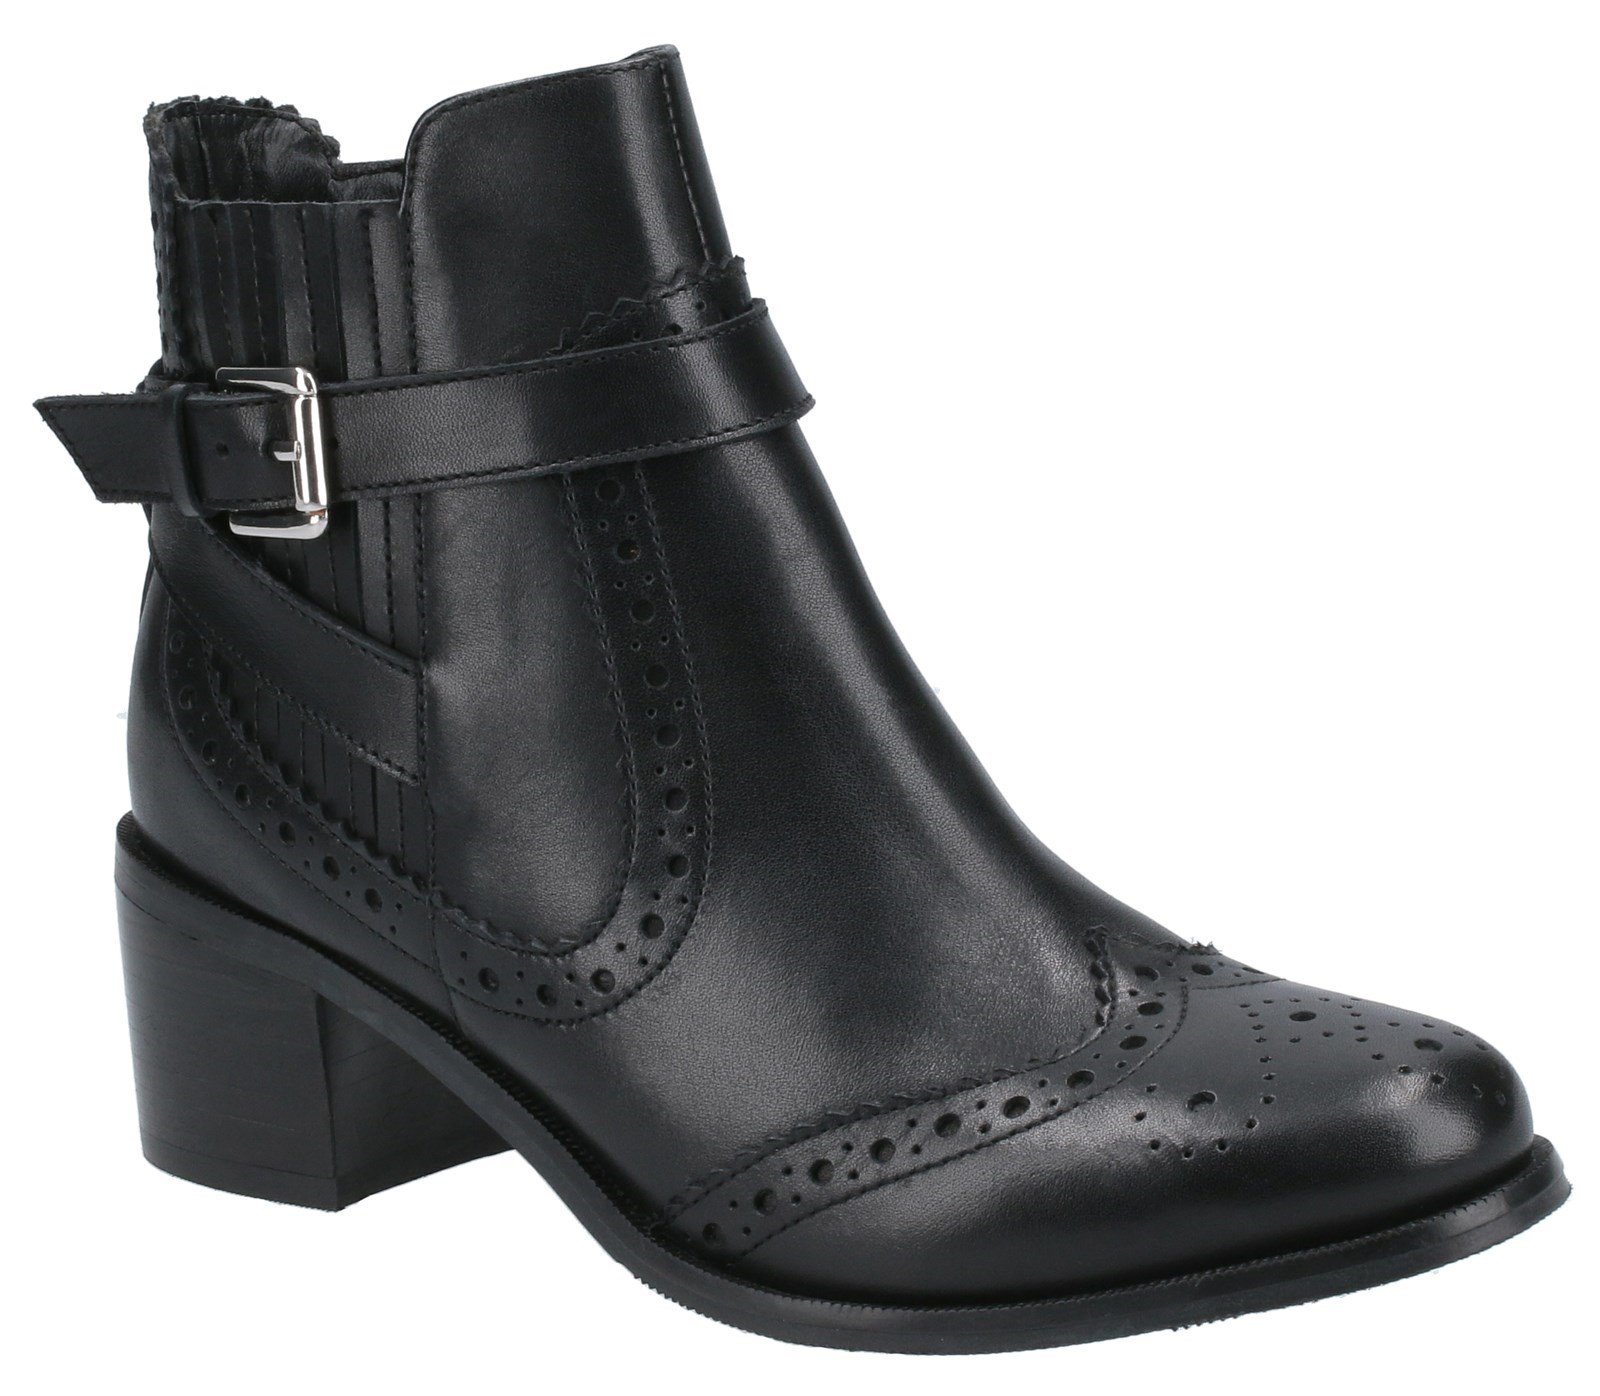 Hush Puppies Women's Rayleigh Ankle Boots Various Colours 31224 - Black 3